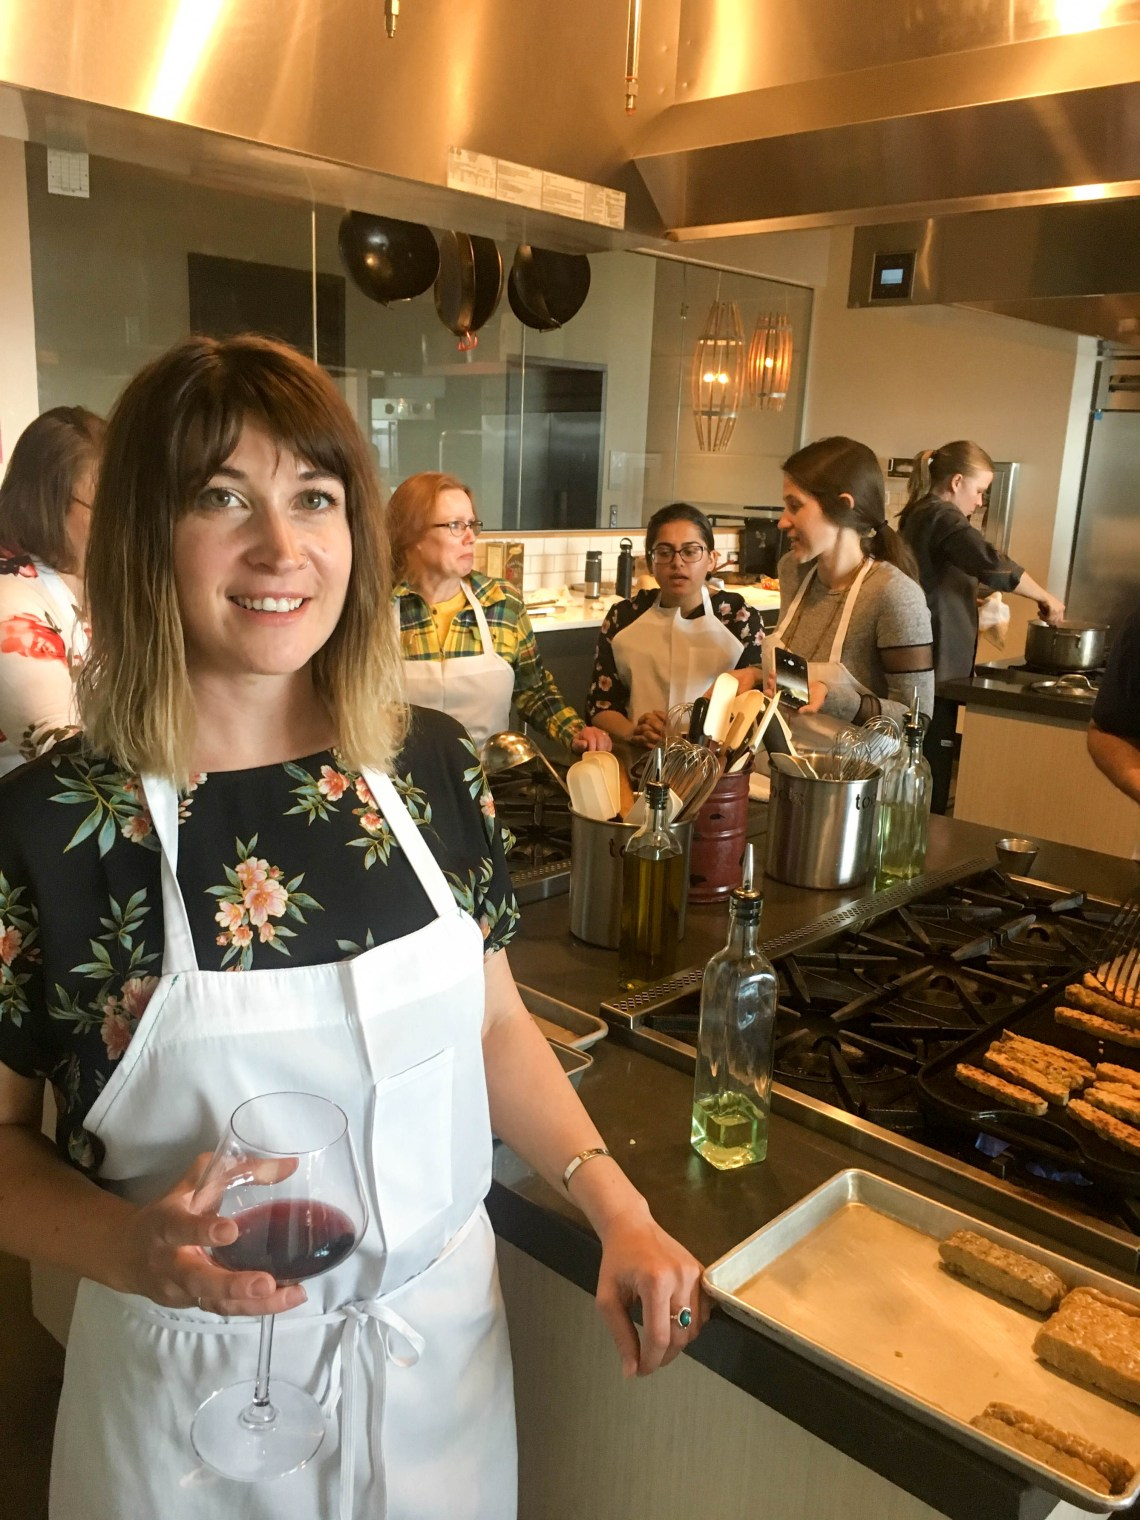 cooking class at uncorked kitchen